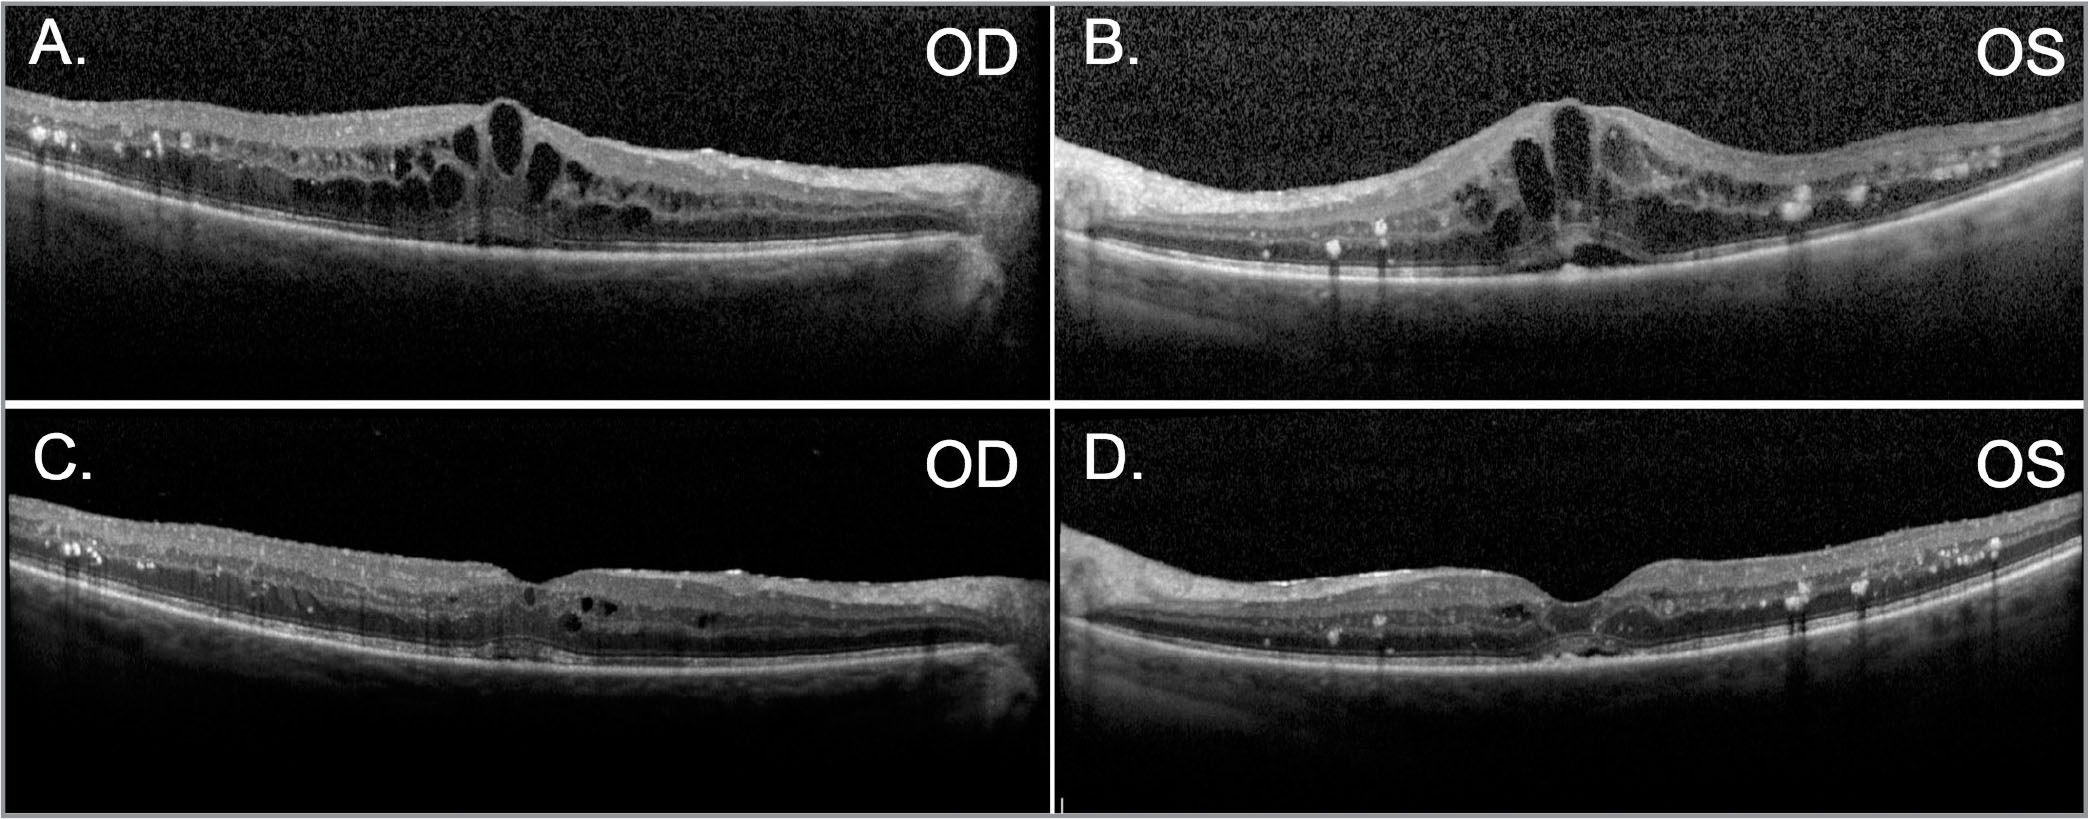 Spectral-domain optical coherence tomography demonstrating bilateral diffuse diabetic macular edema prior to (A, B) and 2 weeks following a single intravitreal injection of aflibercept (C, D) in only the left eye, with a marked bilateral response.